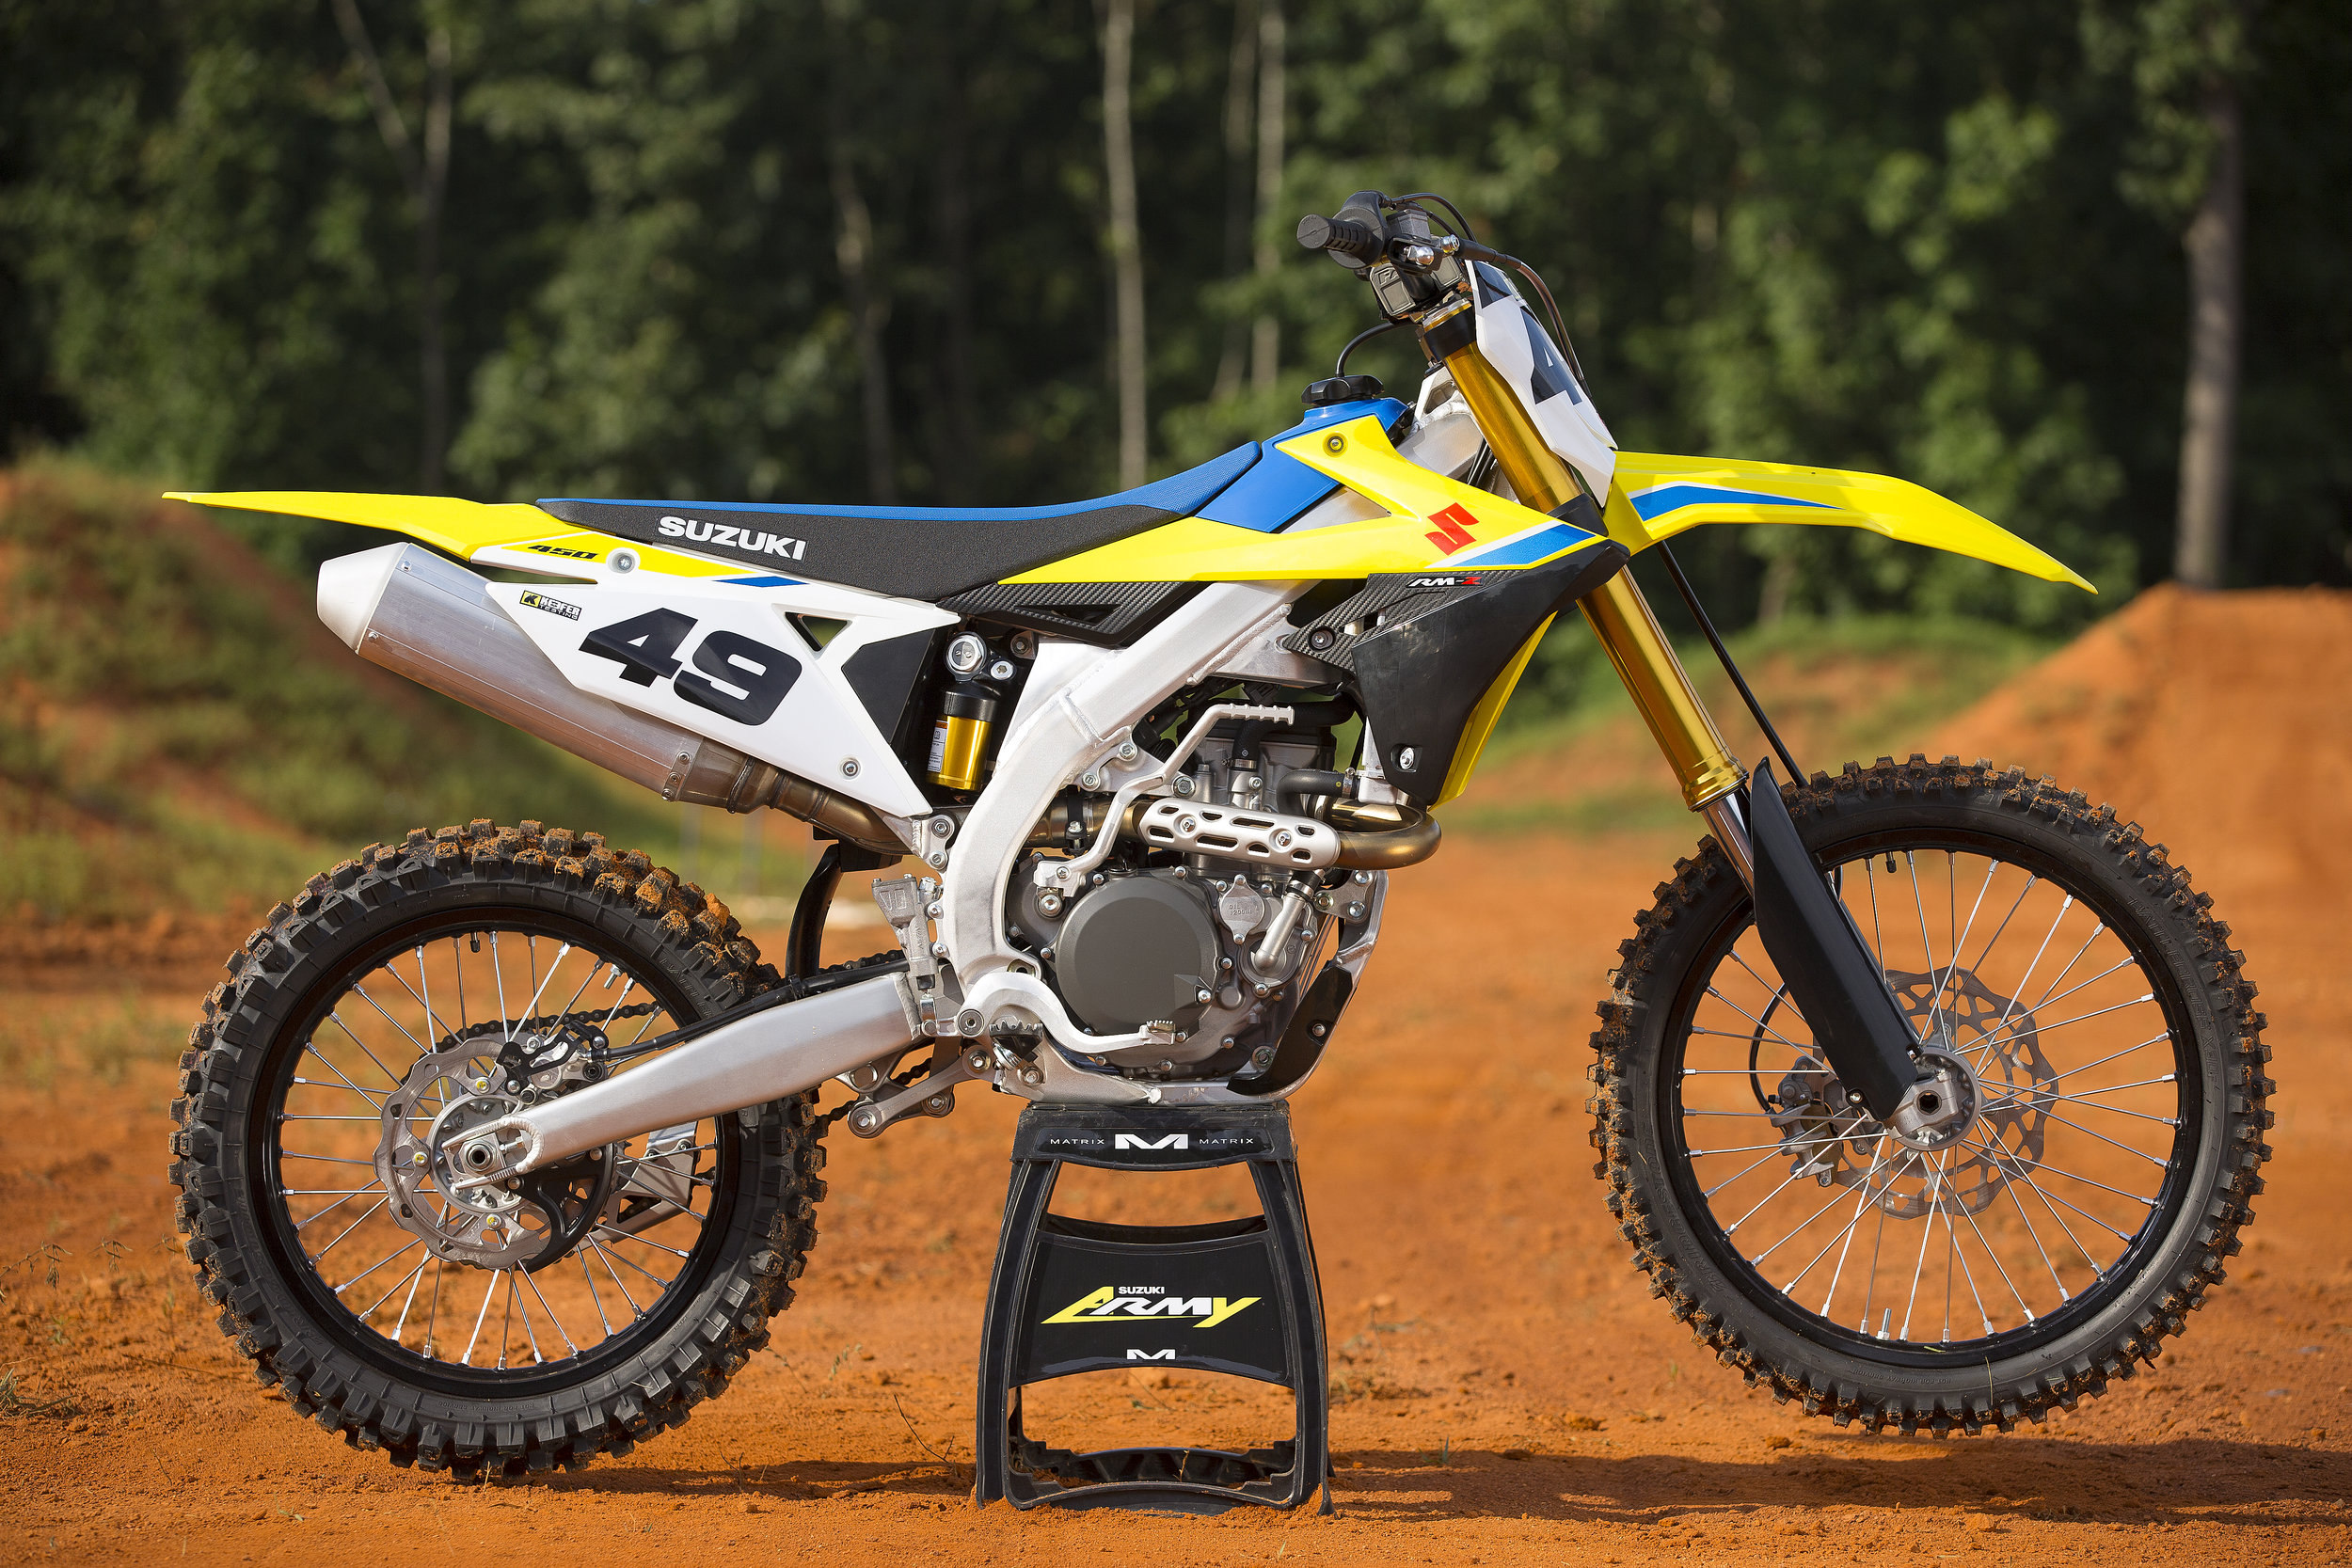 The new 2018 Suzuki RM-Z450